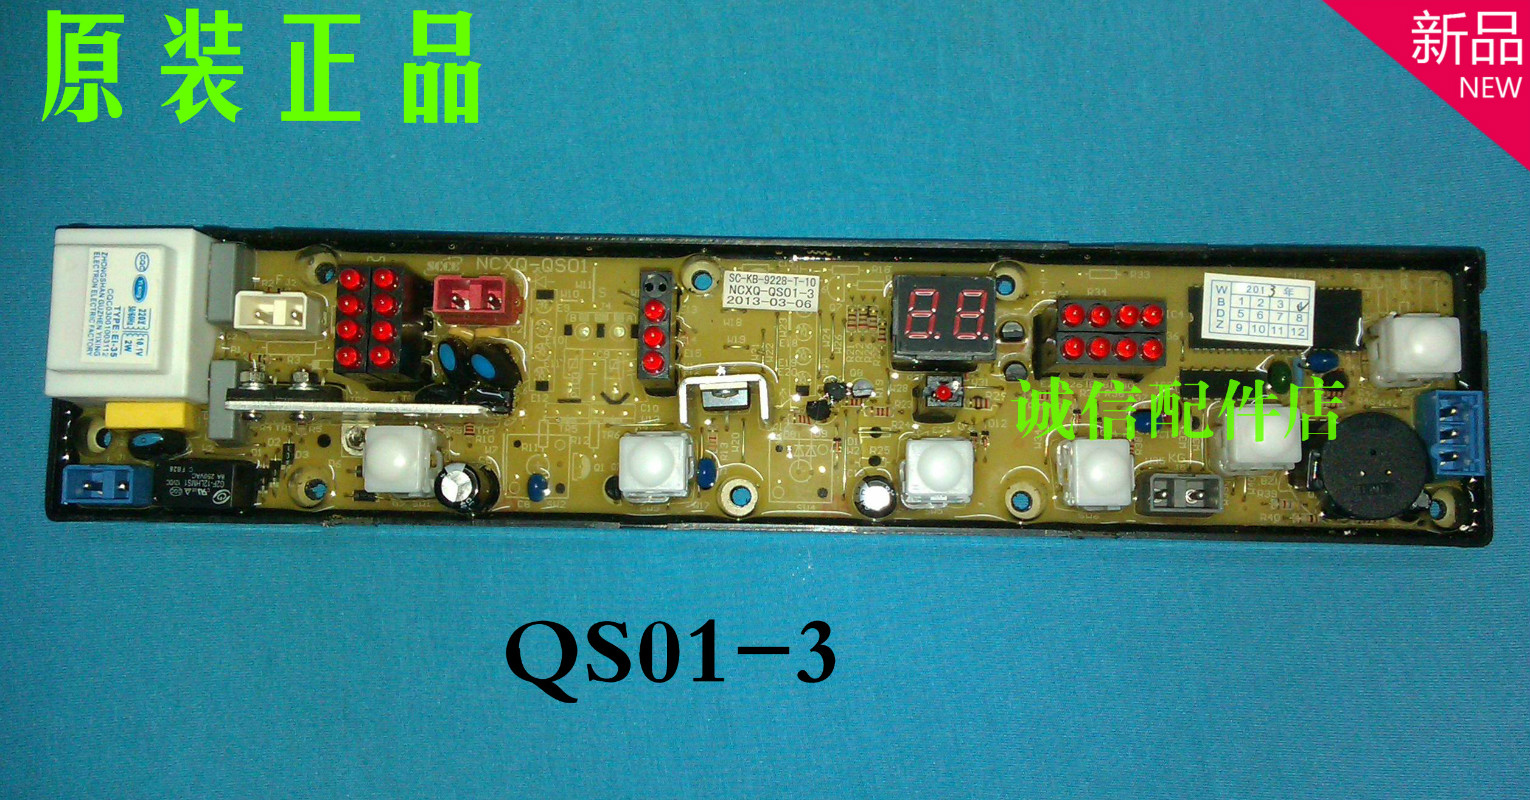 Washing machine xqb52-5256a computer board original motherboard hf-qs01-3 free shipping 100%tested for washing machine board xqb52 5201a control board hf qs560 x motherboard on sale